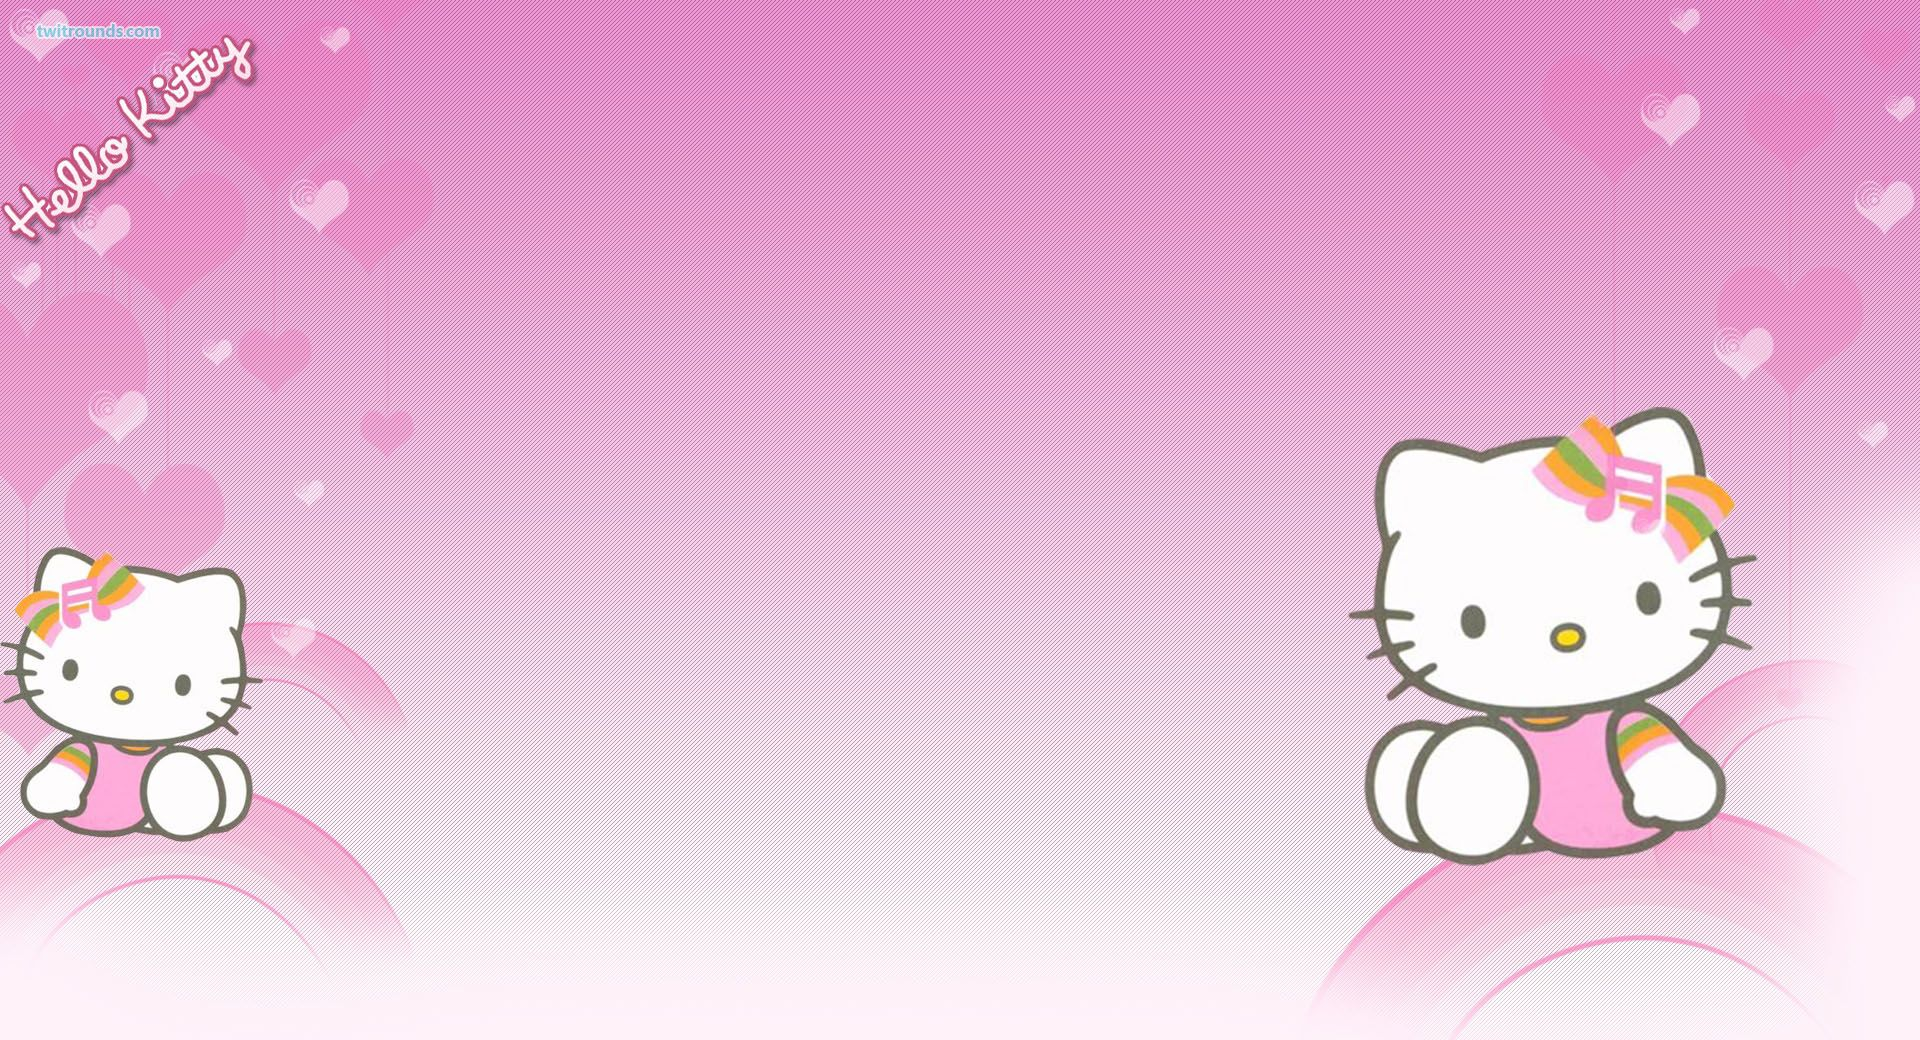 Change Backgrounds Hello Kitty Twitter Background Twitter